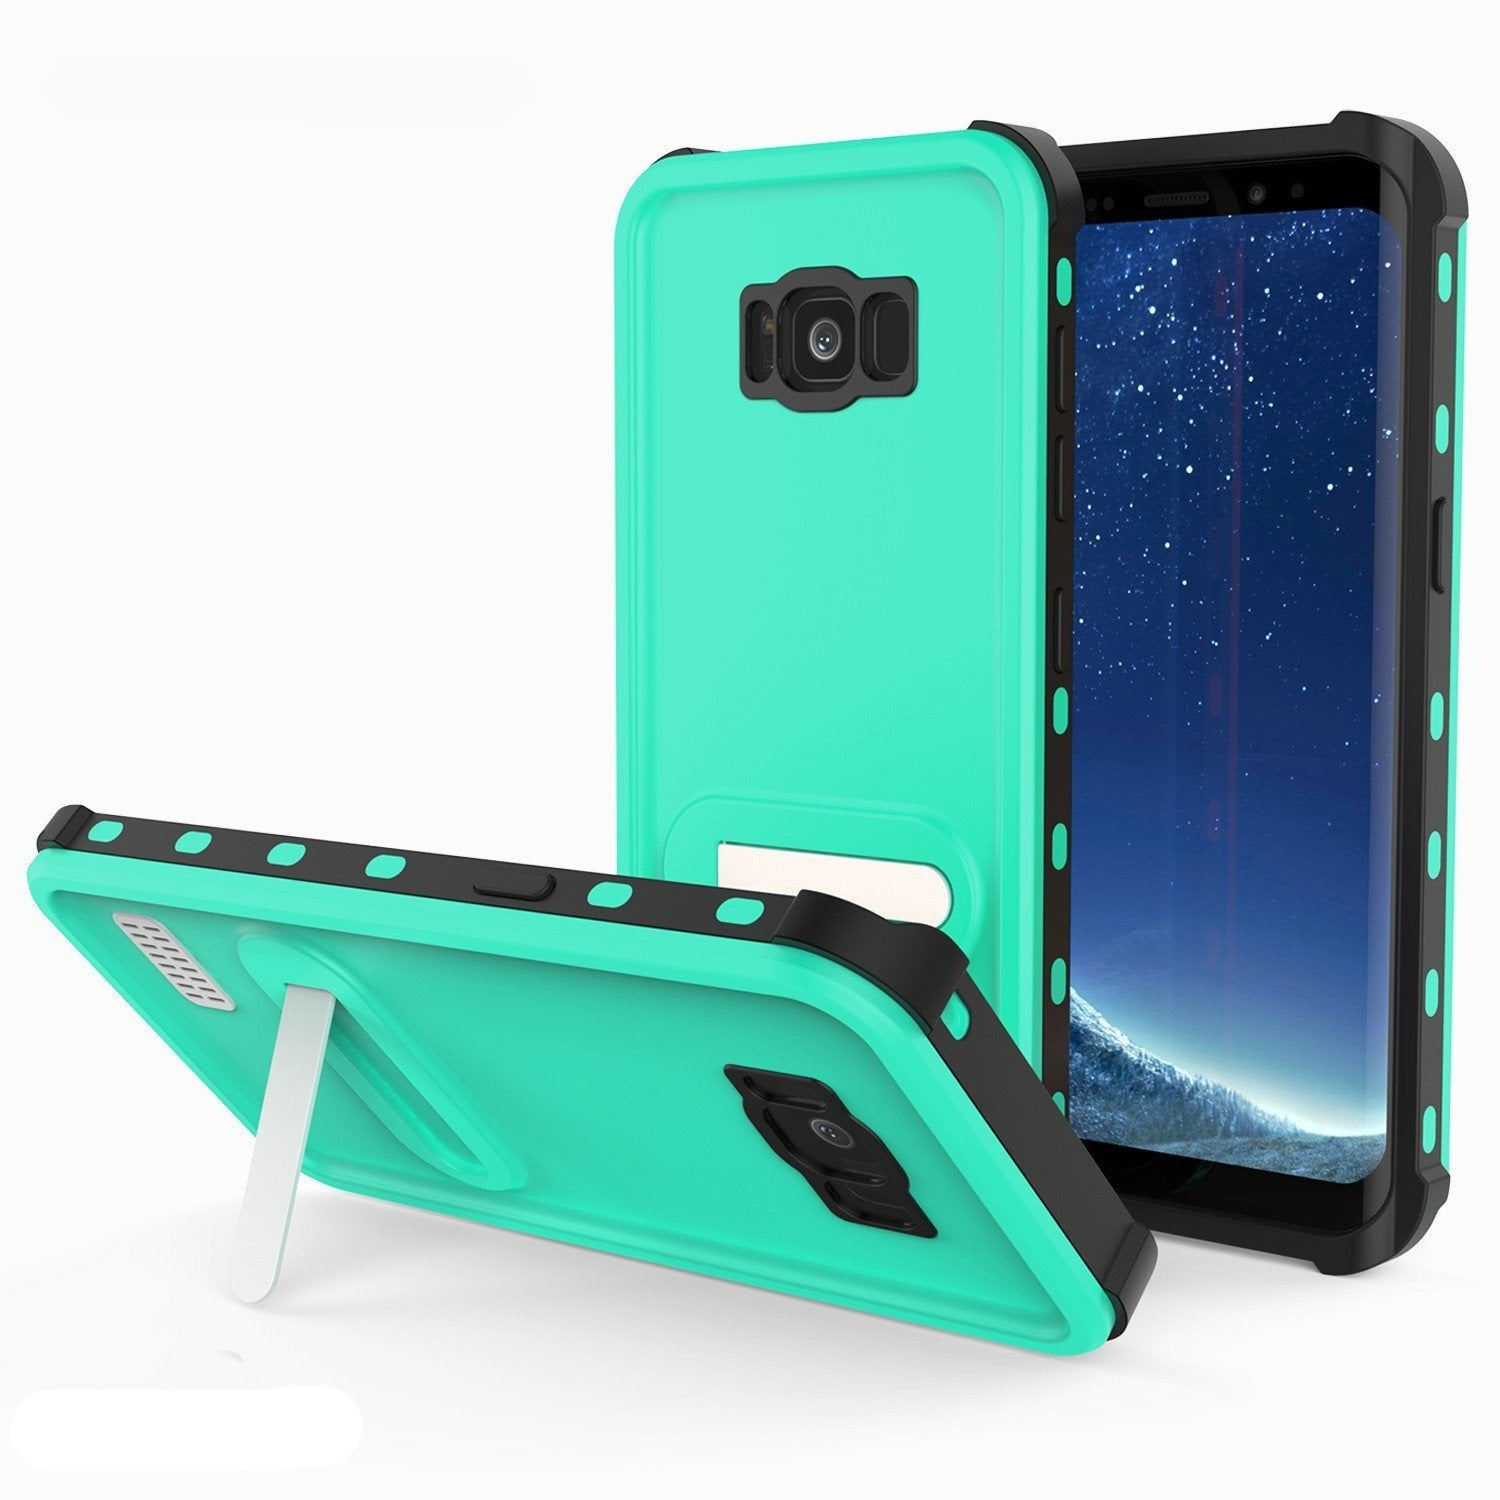 Galaxy S8 Waterproof Case, Punkcase [KickStud Series] [Slim Fit] [IP68 Certified] [Shockproof] [Snowproof] Armor Cover W/ Built-In Kickstand [TEAL]